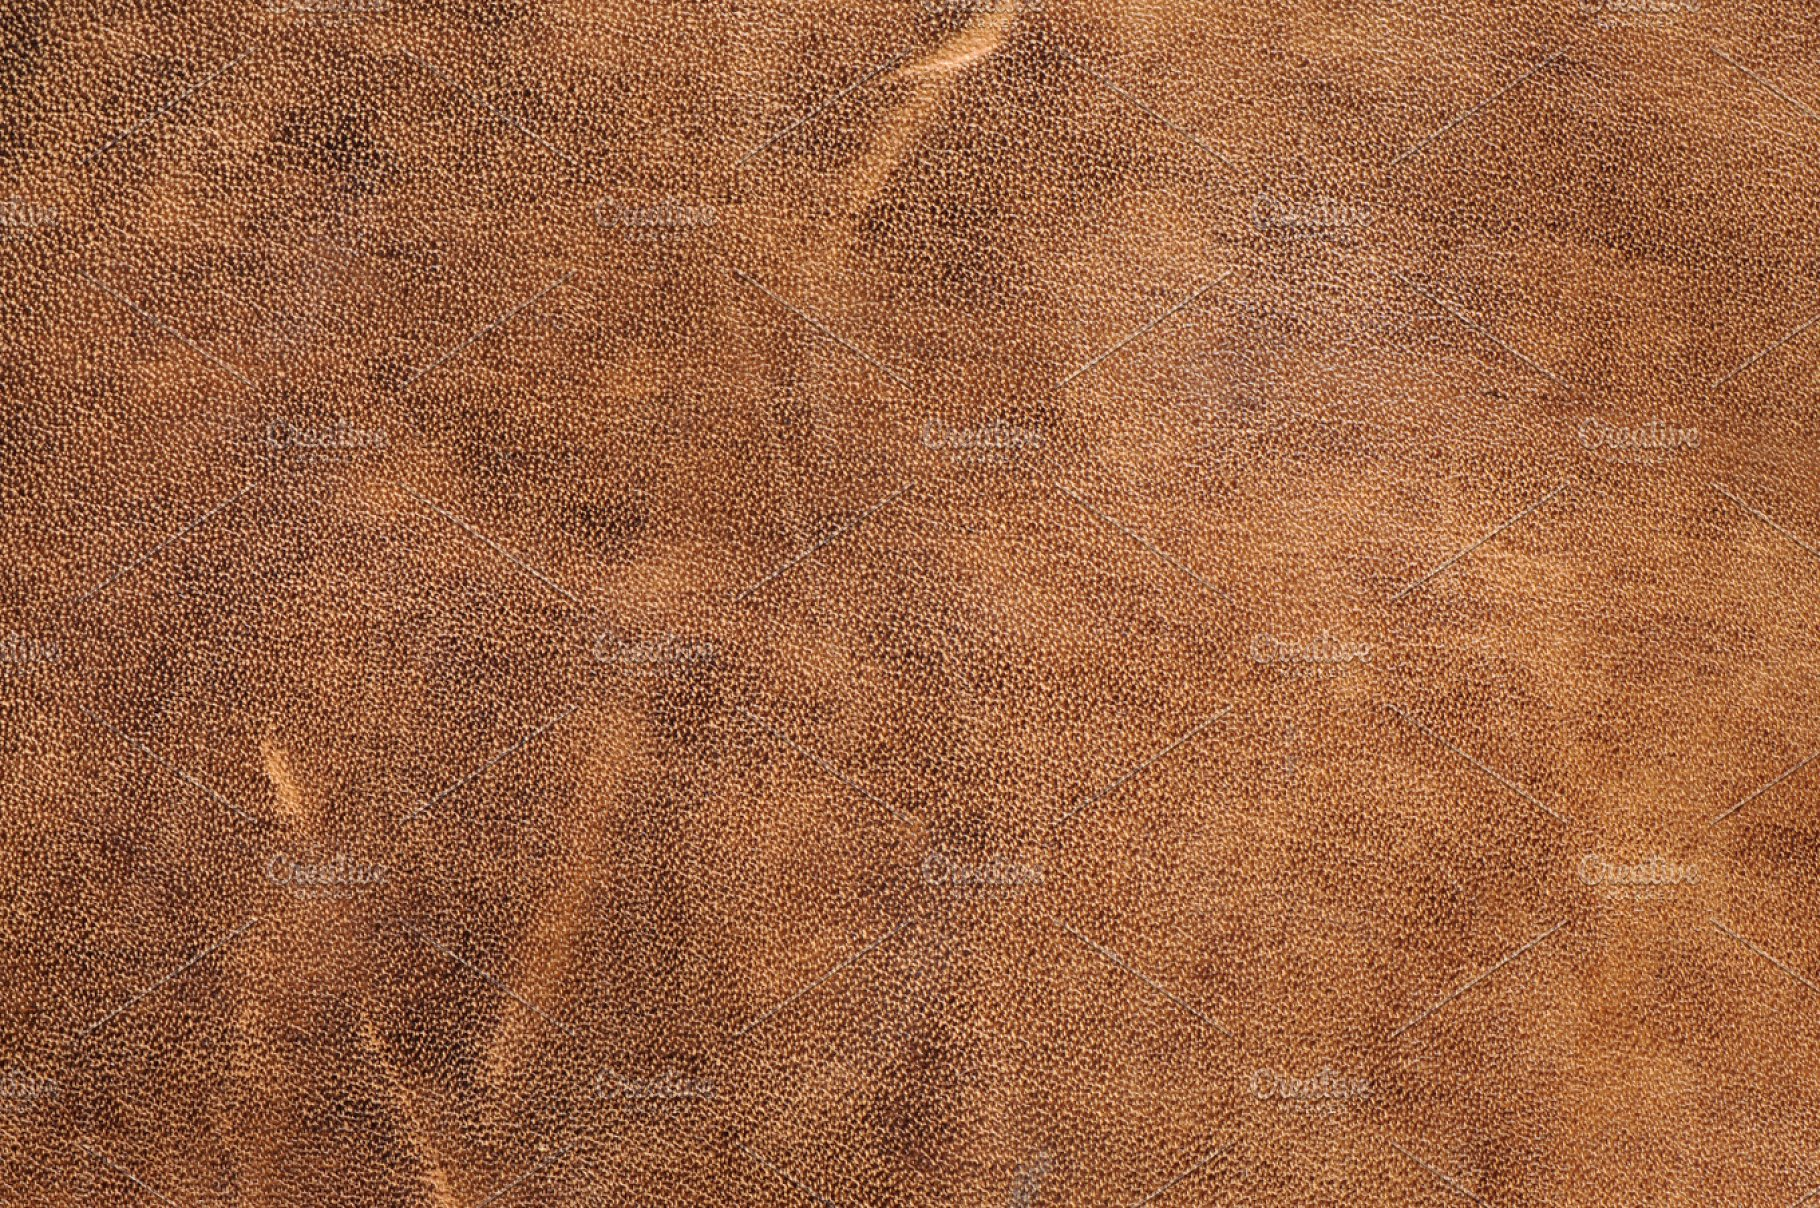 Leather texture | High-Quality Abstract Stock Photos ...